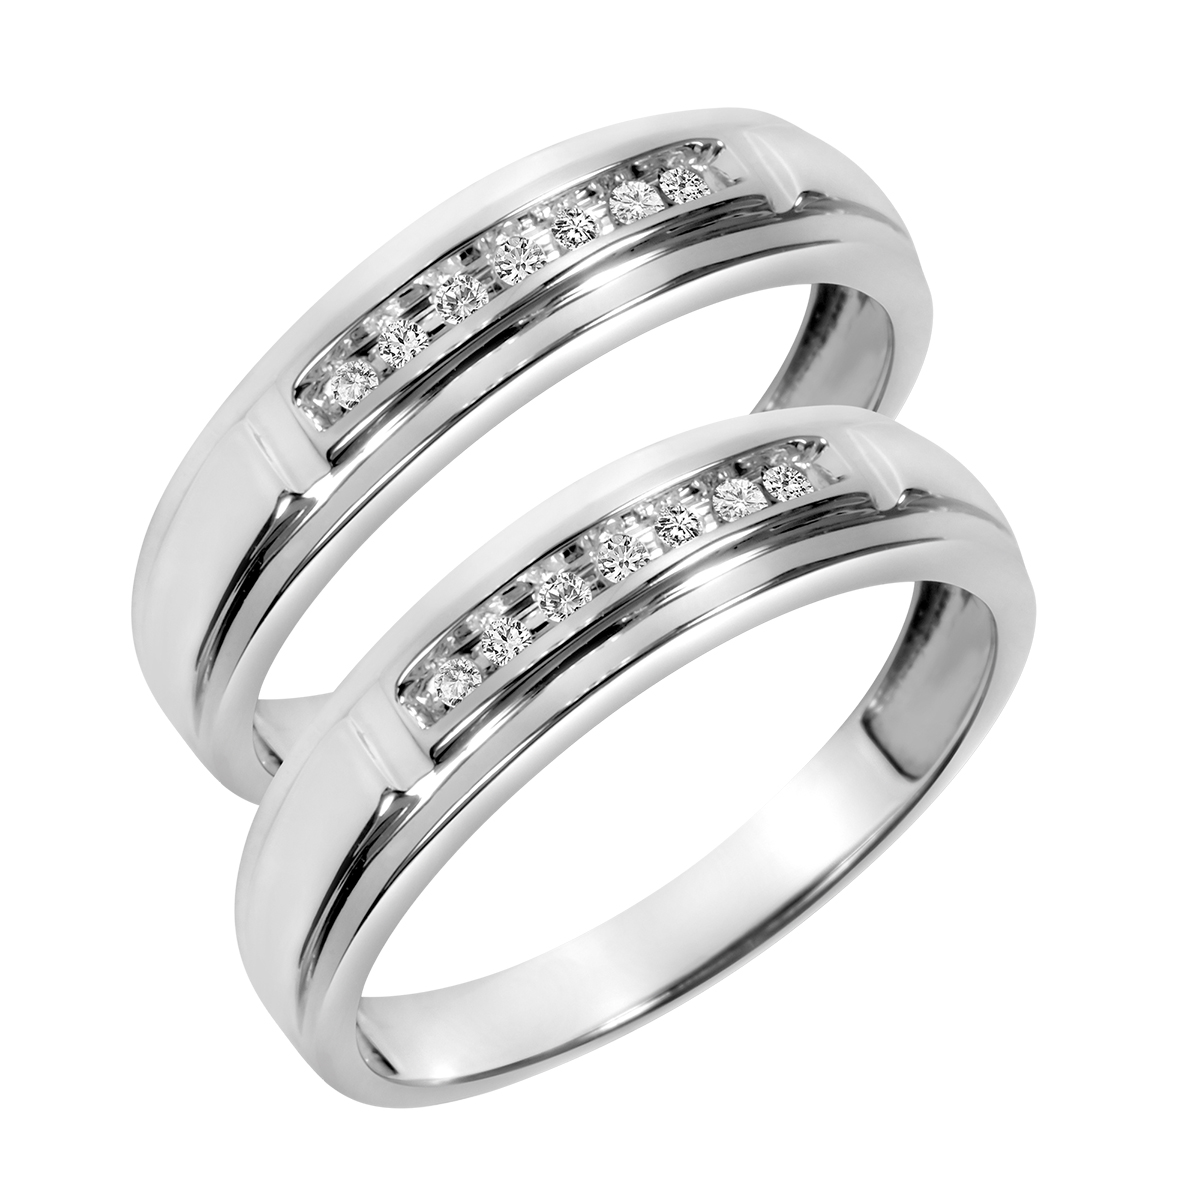 1/7 Carat T.W. Round Cut Mens  Same Sex Wedding Band Set 14K White Gold- Size 8